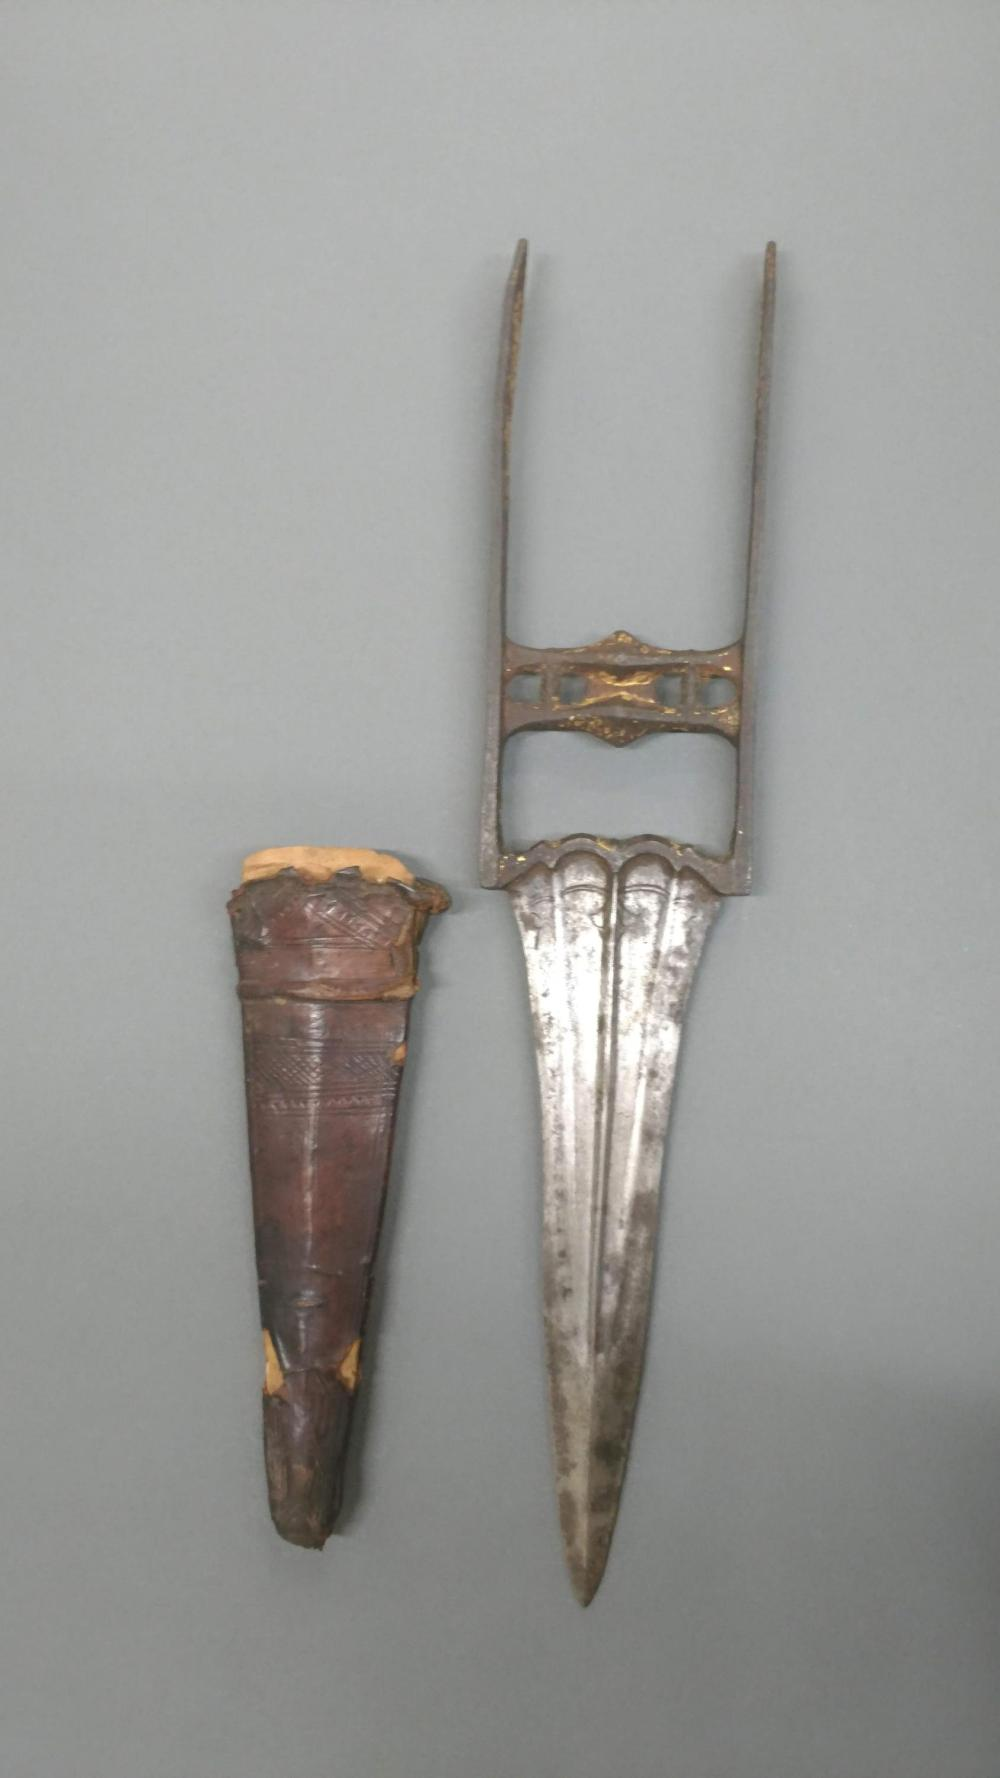 An Indian Katara or push dagger. Double edged blade and gilt detail on handle. Comes with leather scabbard.